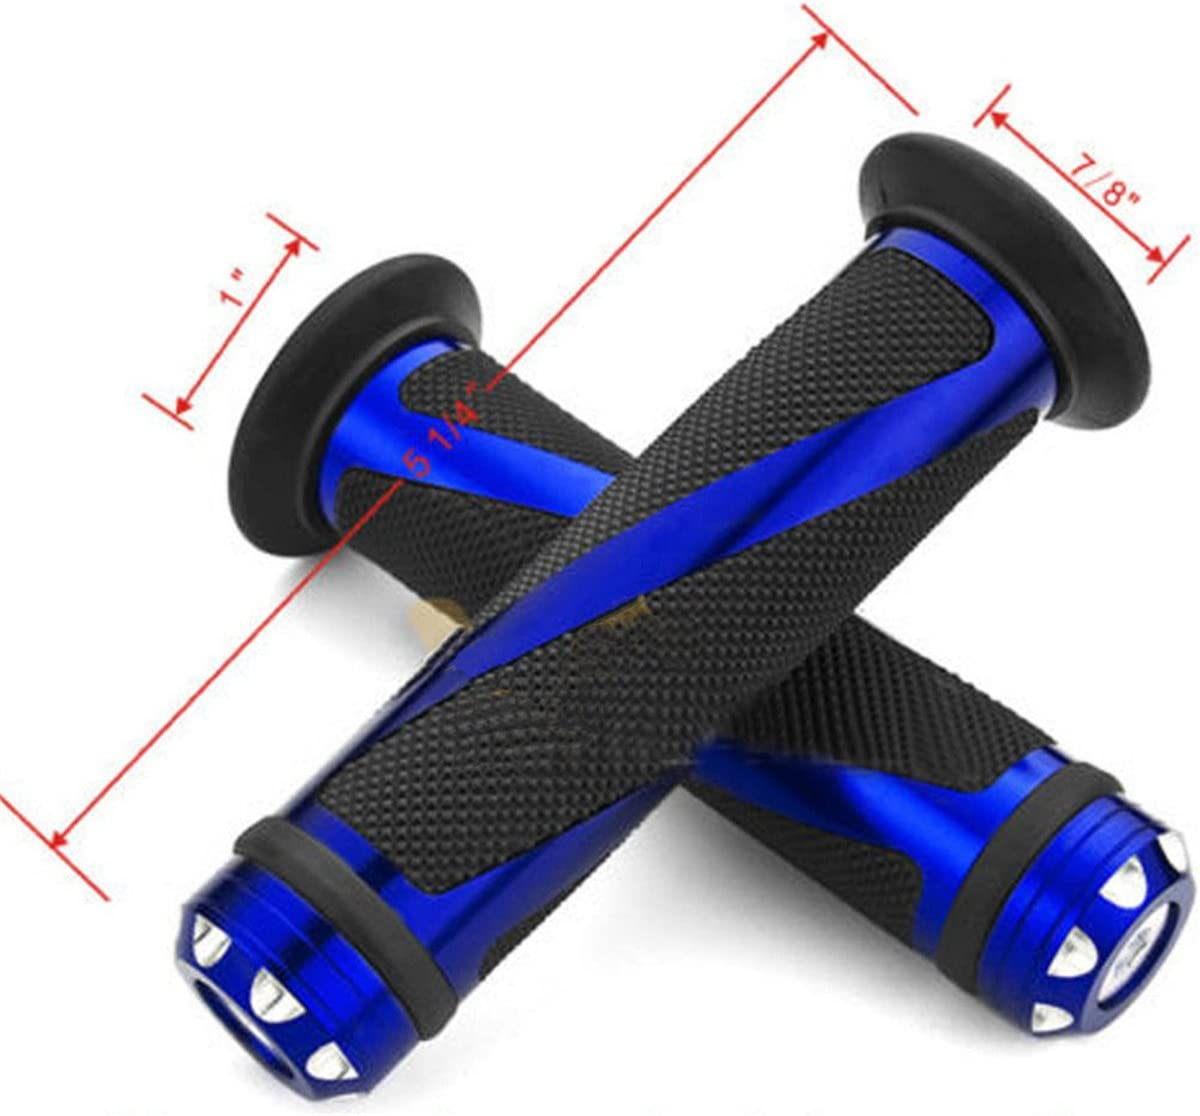 N//A ATTEEN 7//8 Aluminum Rubber Motorcycle Handlebar Grips Gel 22mm Hand Grips for Sports Motorcycle Bike